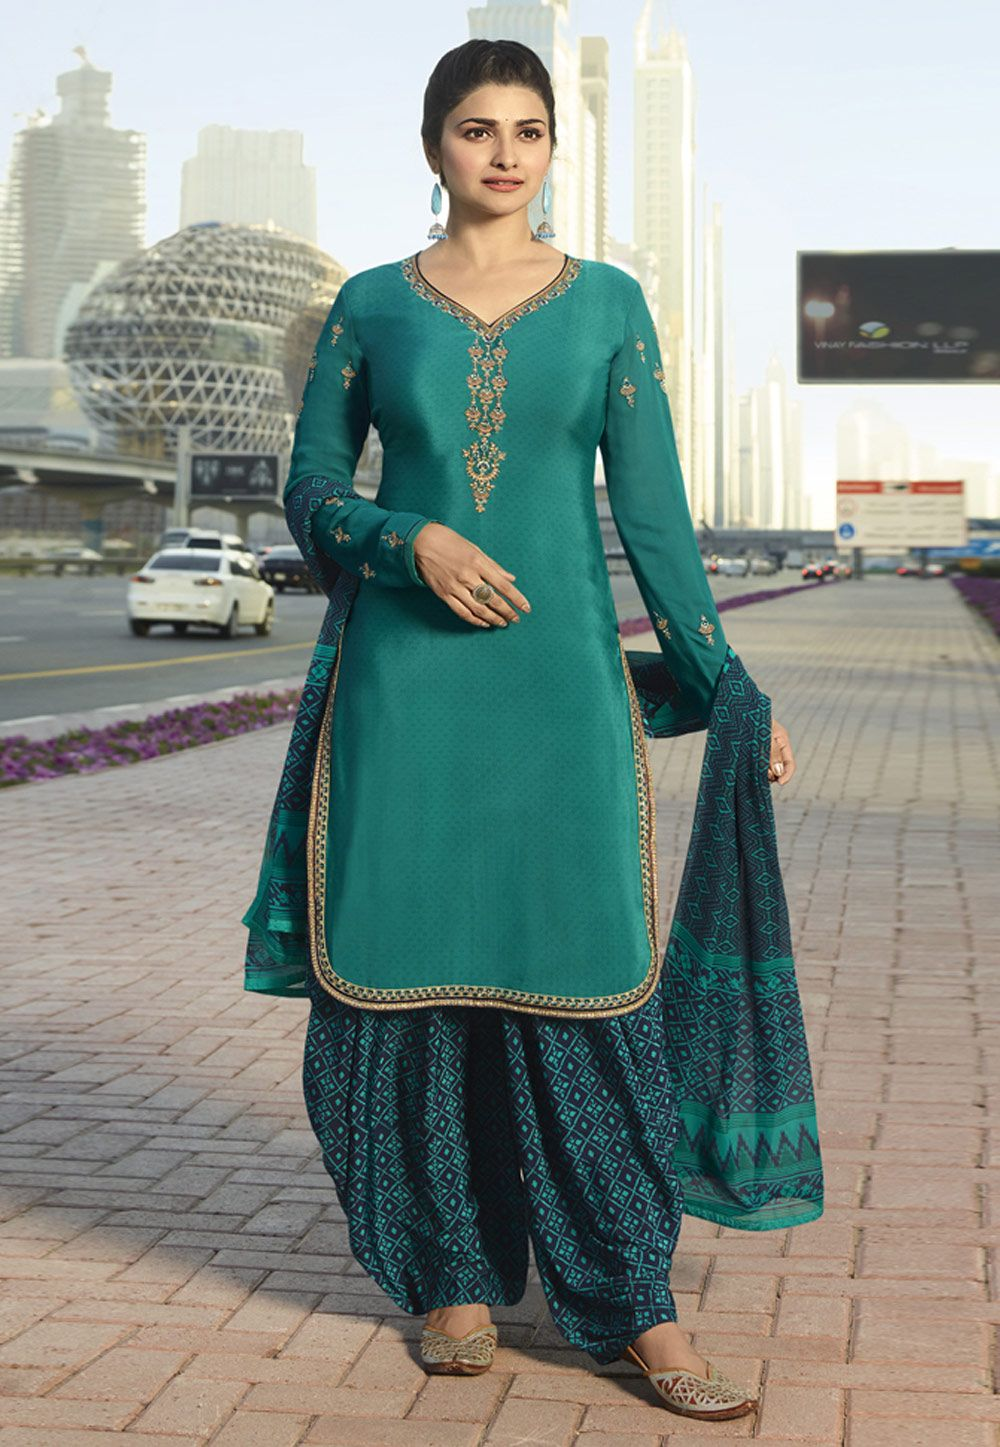 ea2c4c5adc5 Buy Prachi Desai Teal Crepe Patiala Suit 157403 online at lowest price from  huge collection of salwar kameez at Indianclothstore.com.